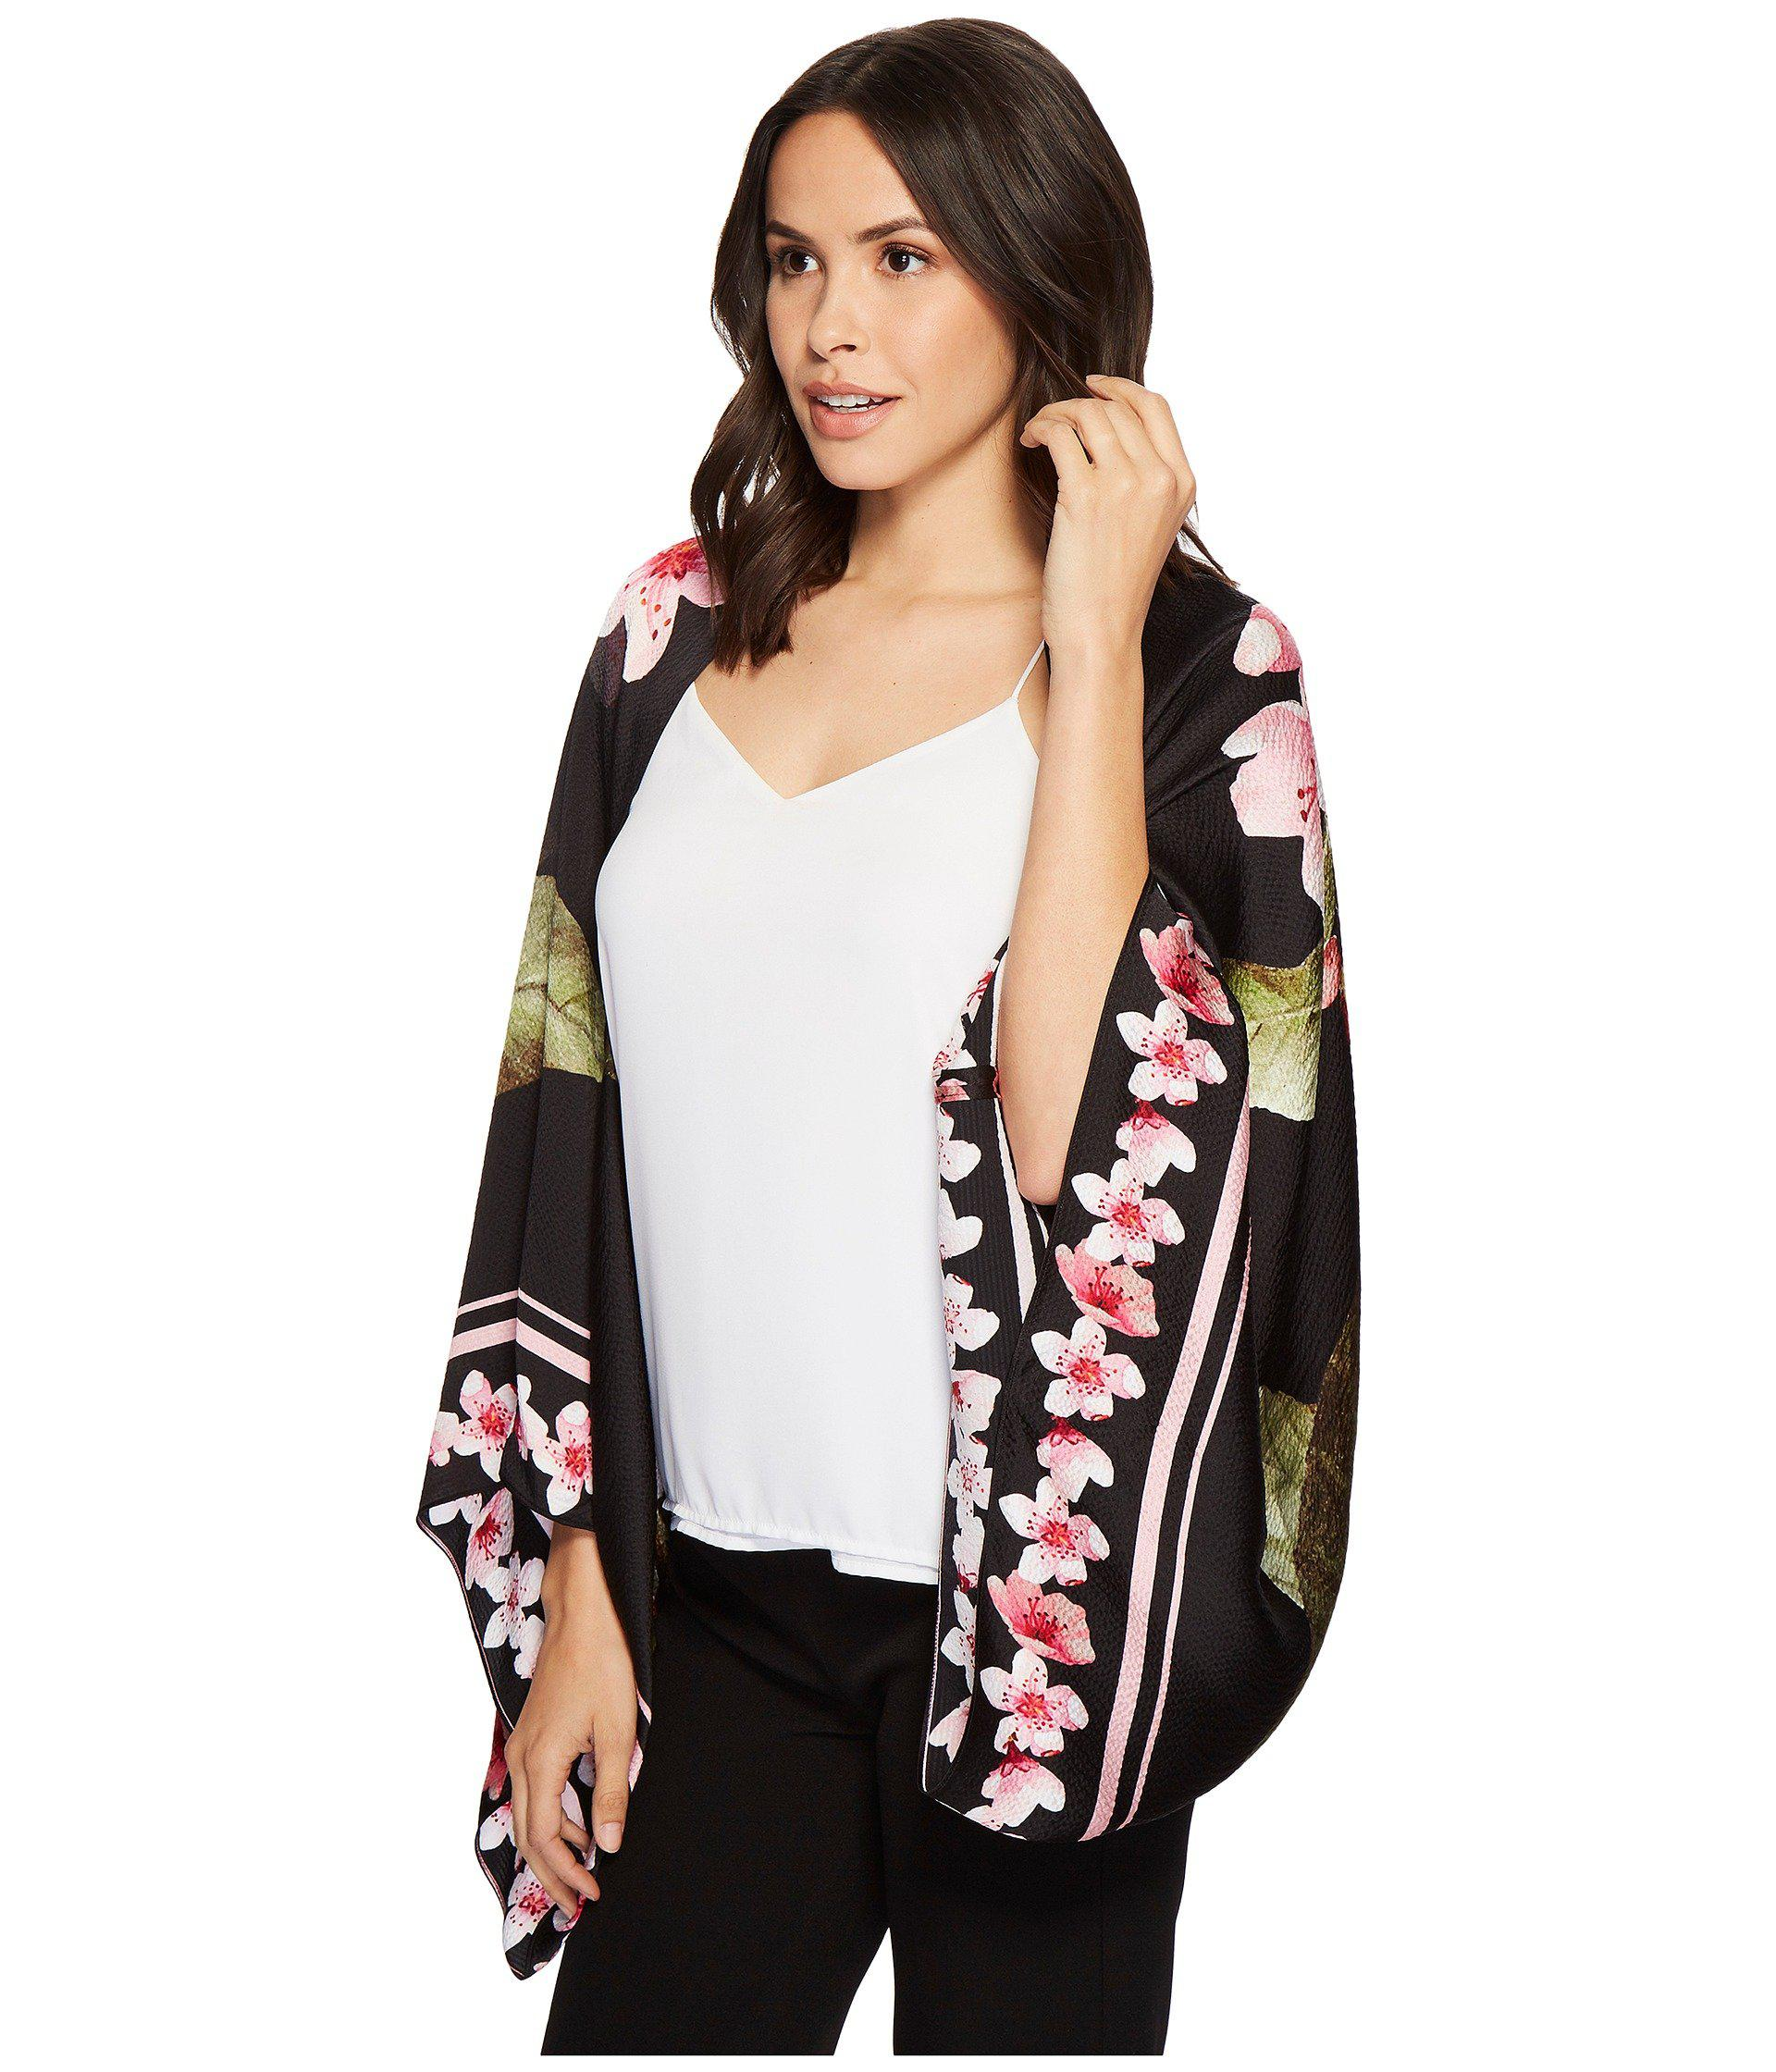 abebaeee3ec2f1 Lyst - Ted Baker Peach Blossom Cape Scarf in Black